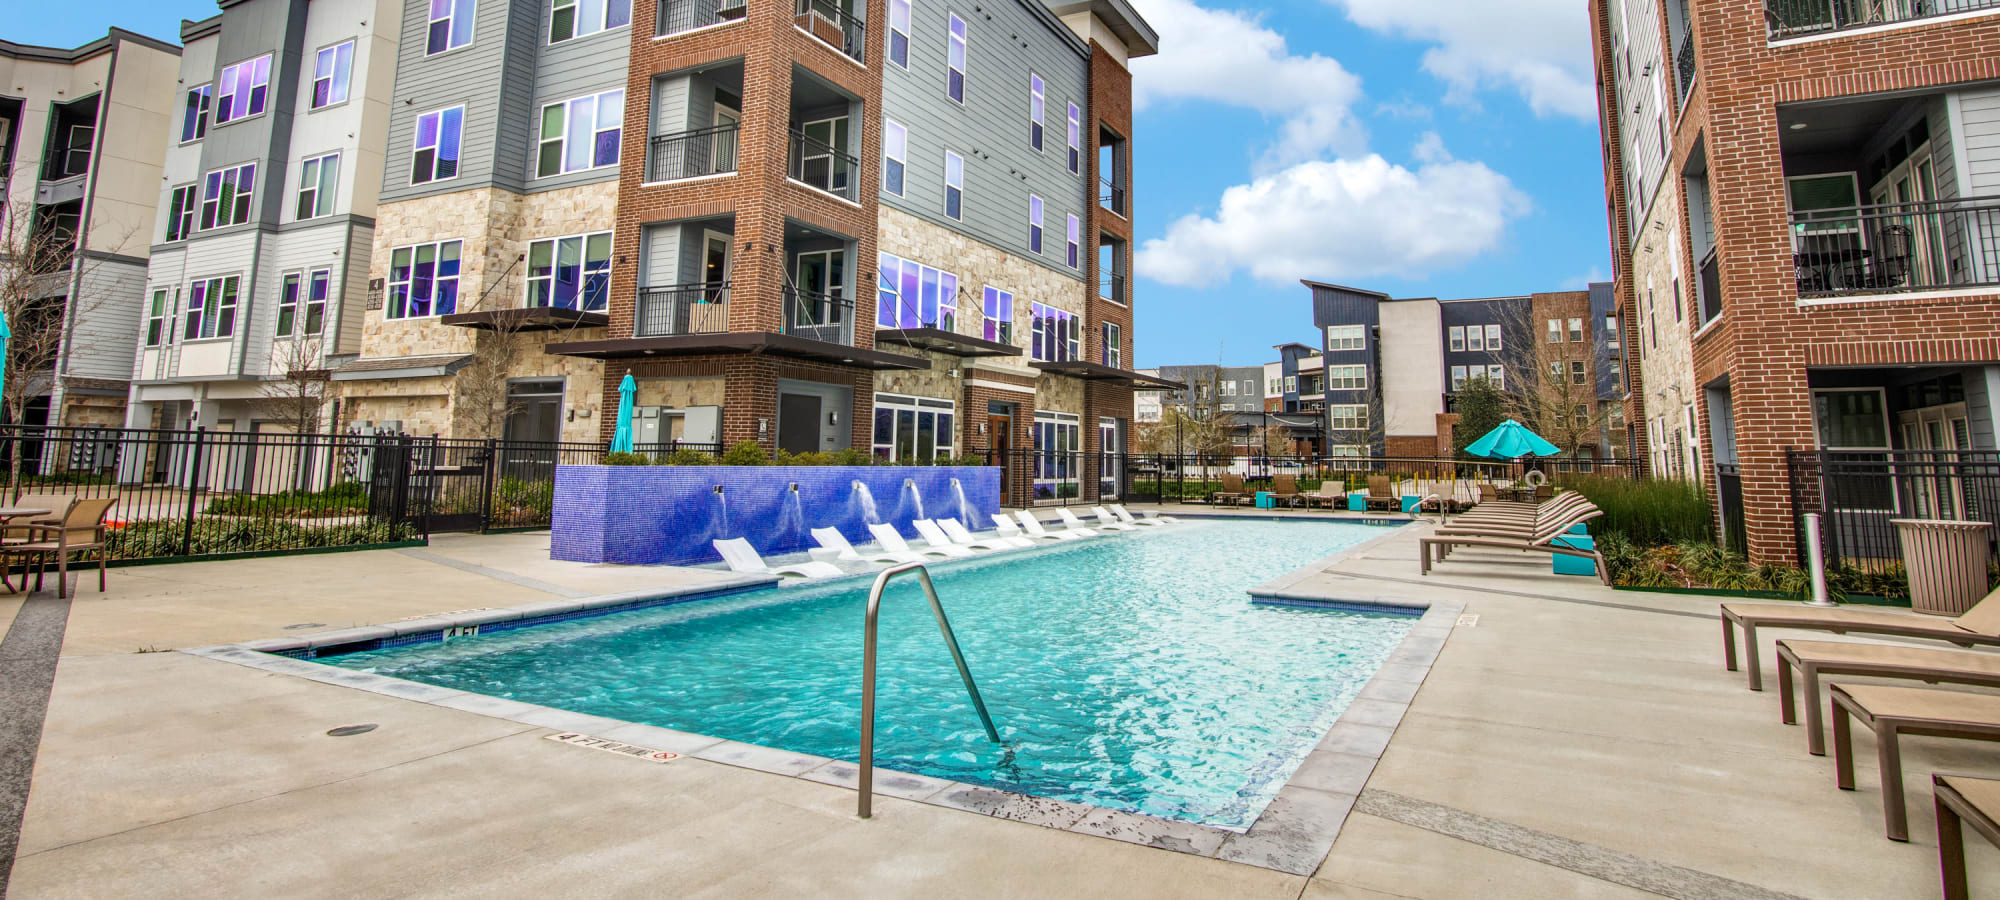 Apartment in Conroe, Texas near Enclave at Woodland Lakes